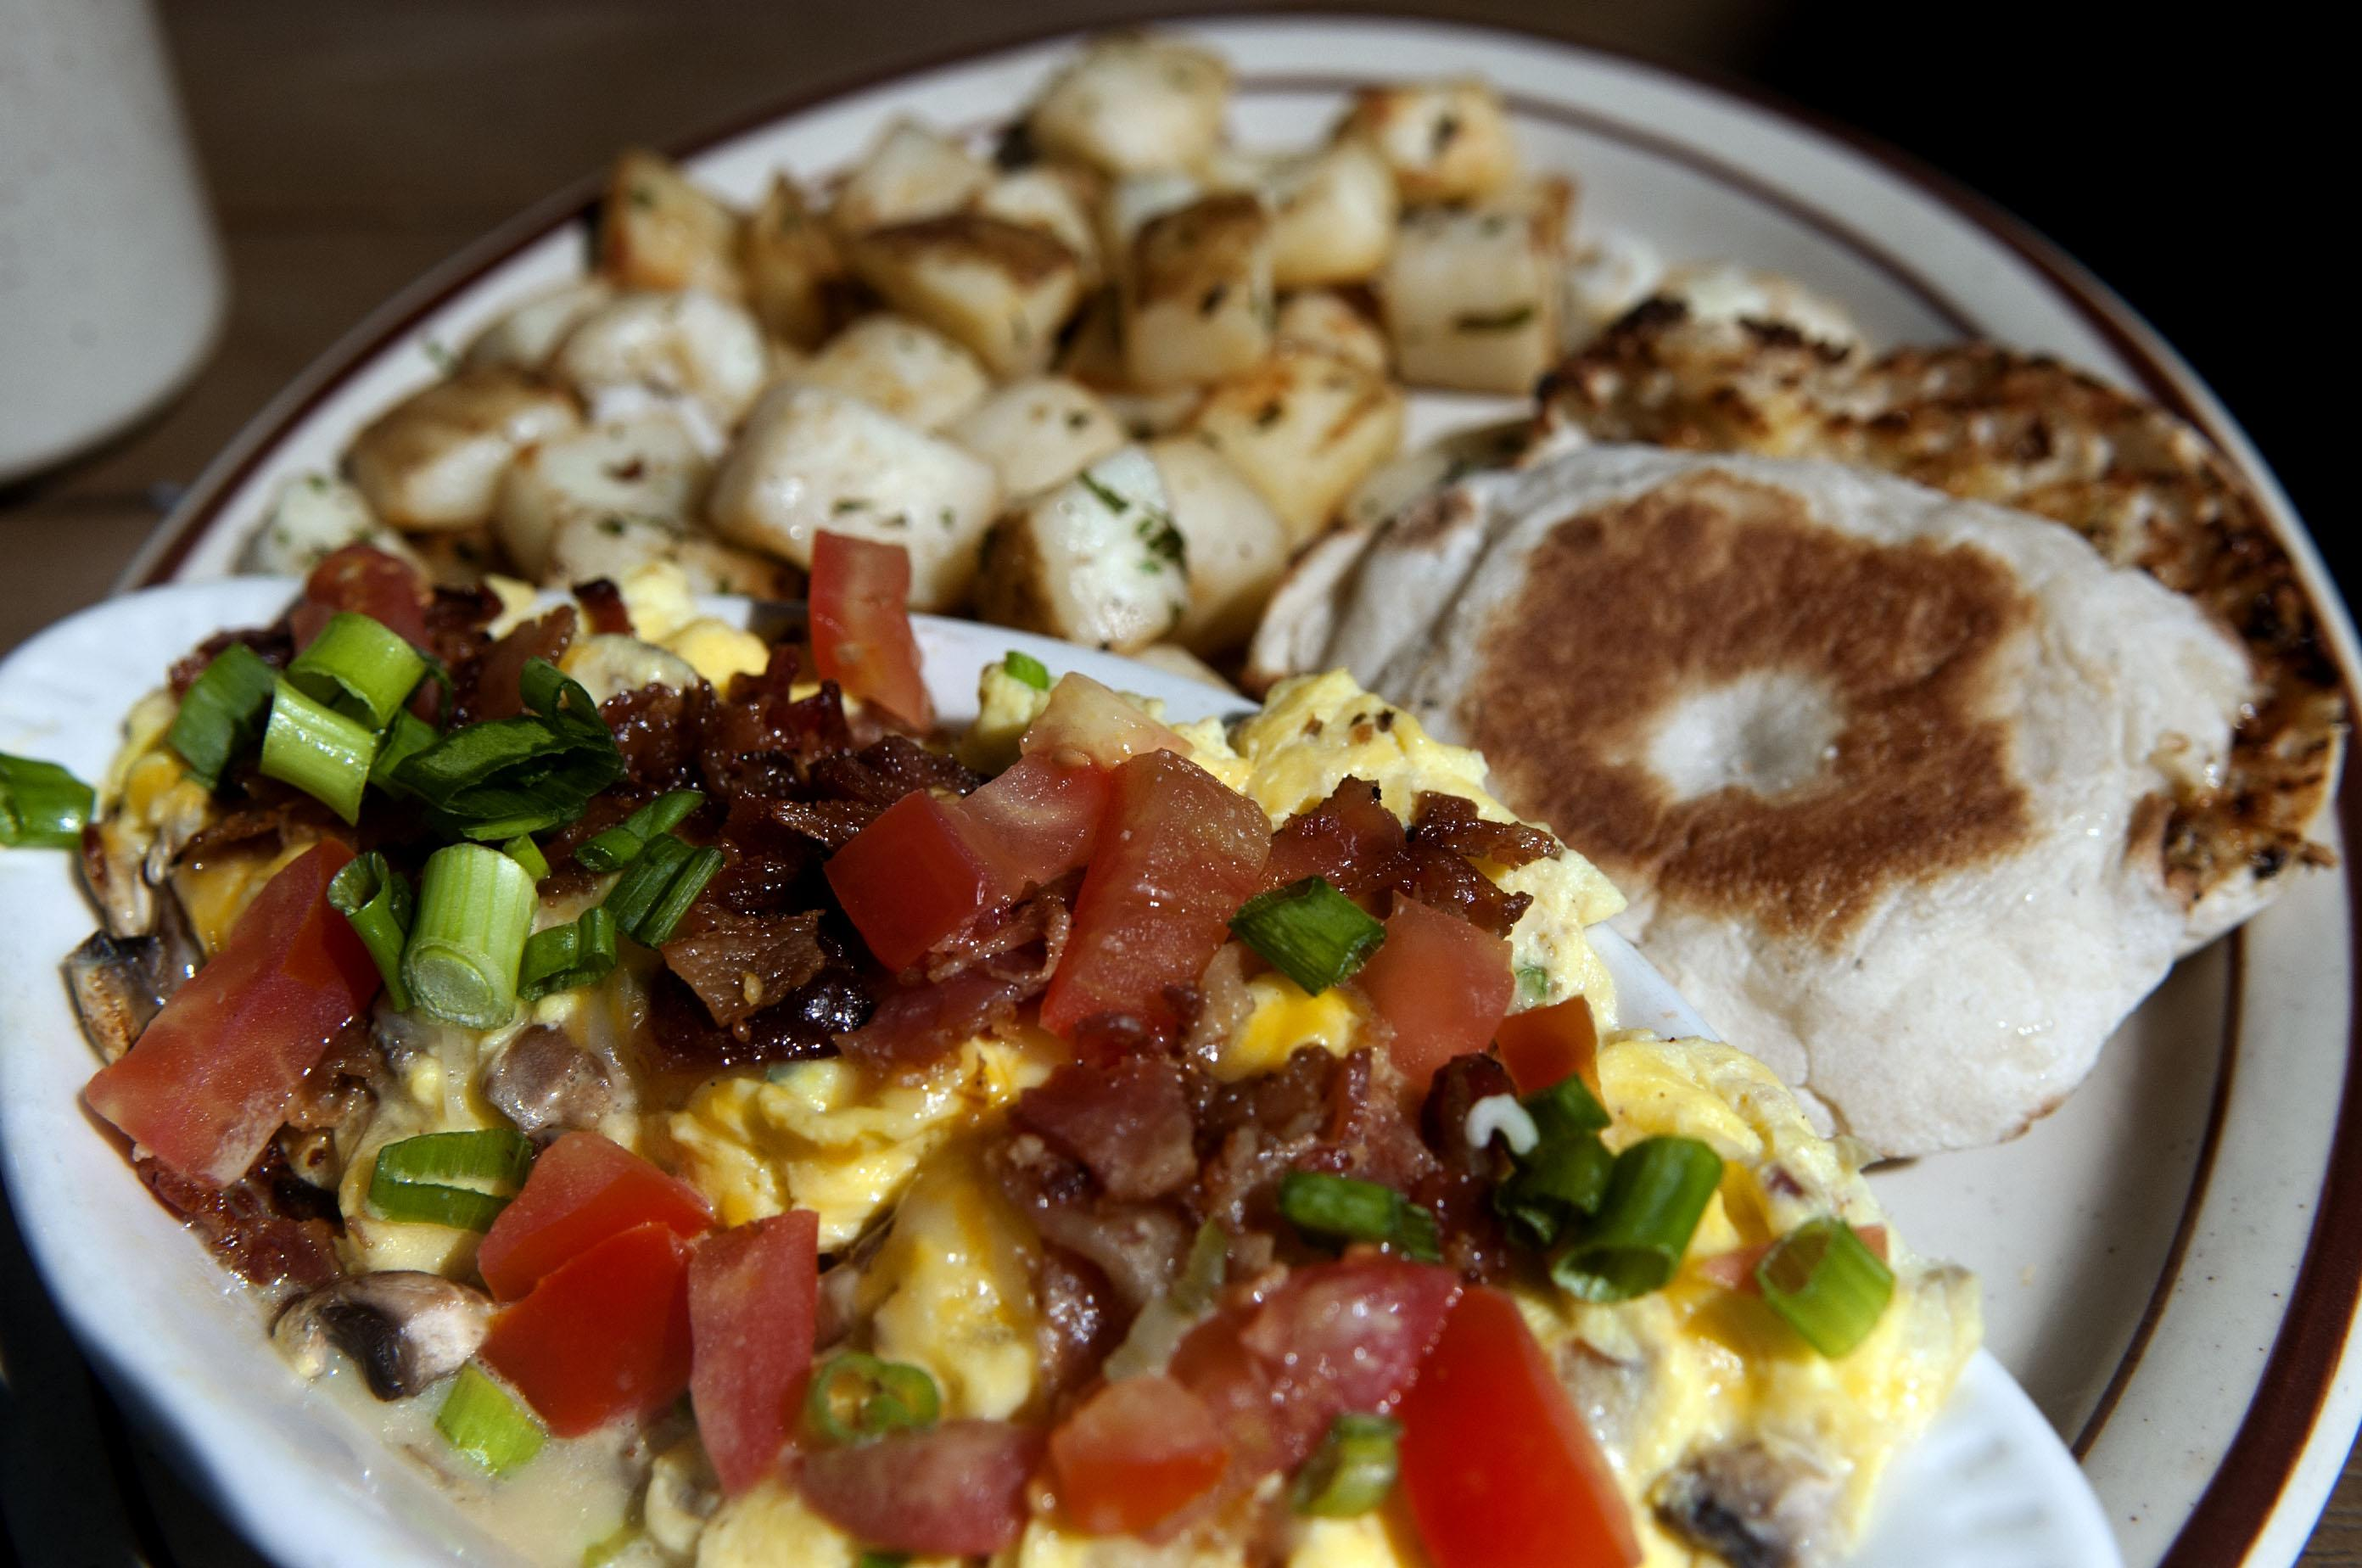 Breakfast Club Where To Get The Best Breakfasts In Spokane